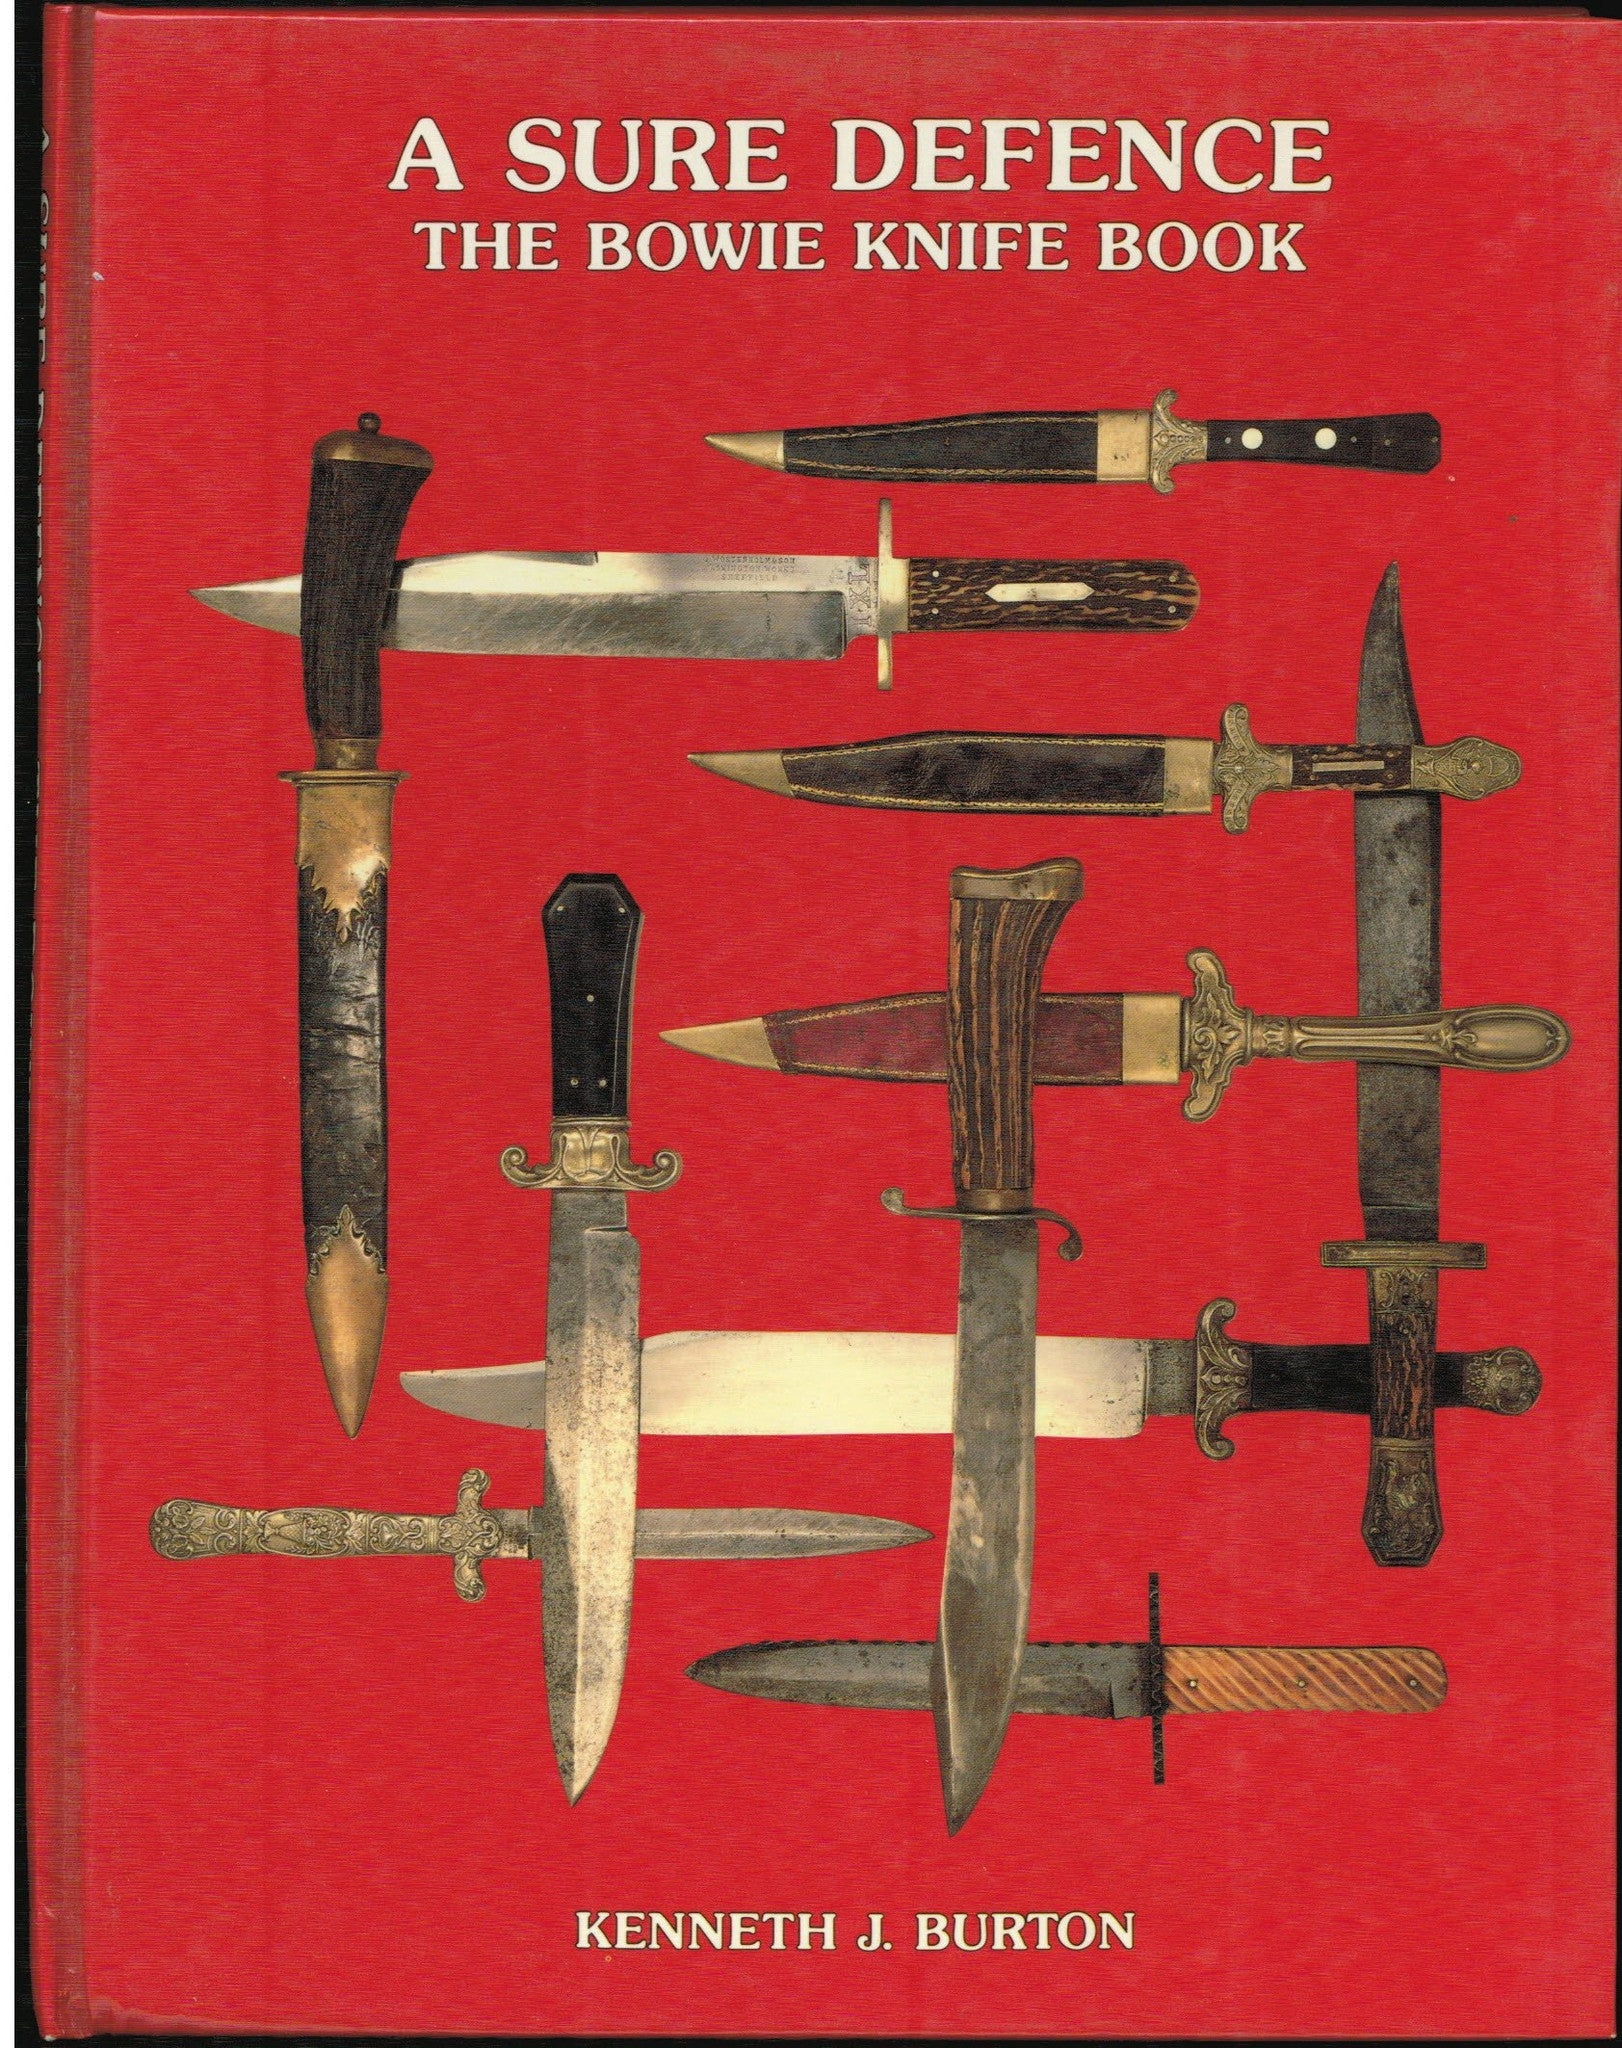 """A Sure Defence - The Bowie Knife Book"" by Kenneth J. Burton"